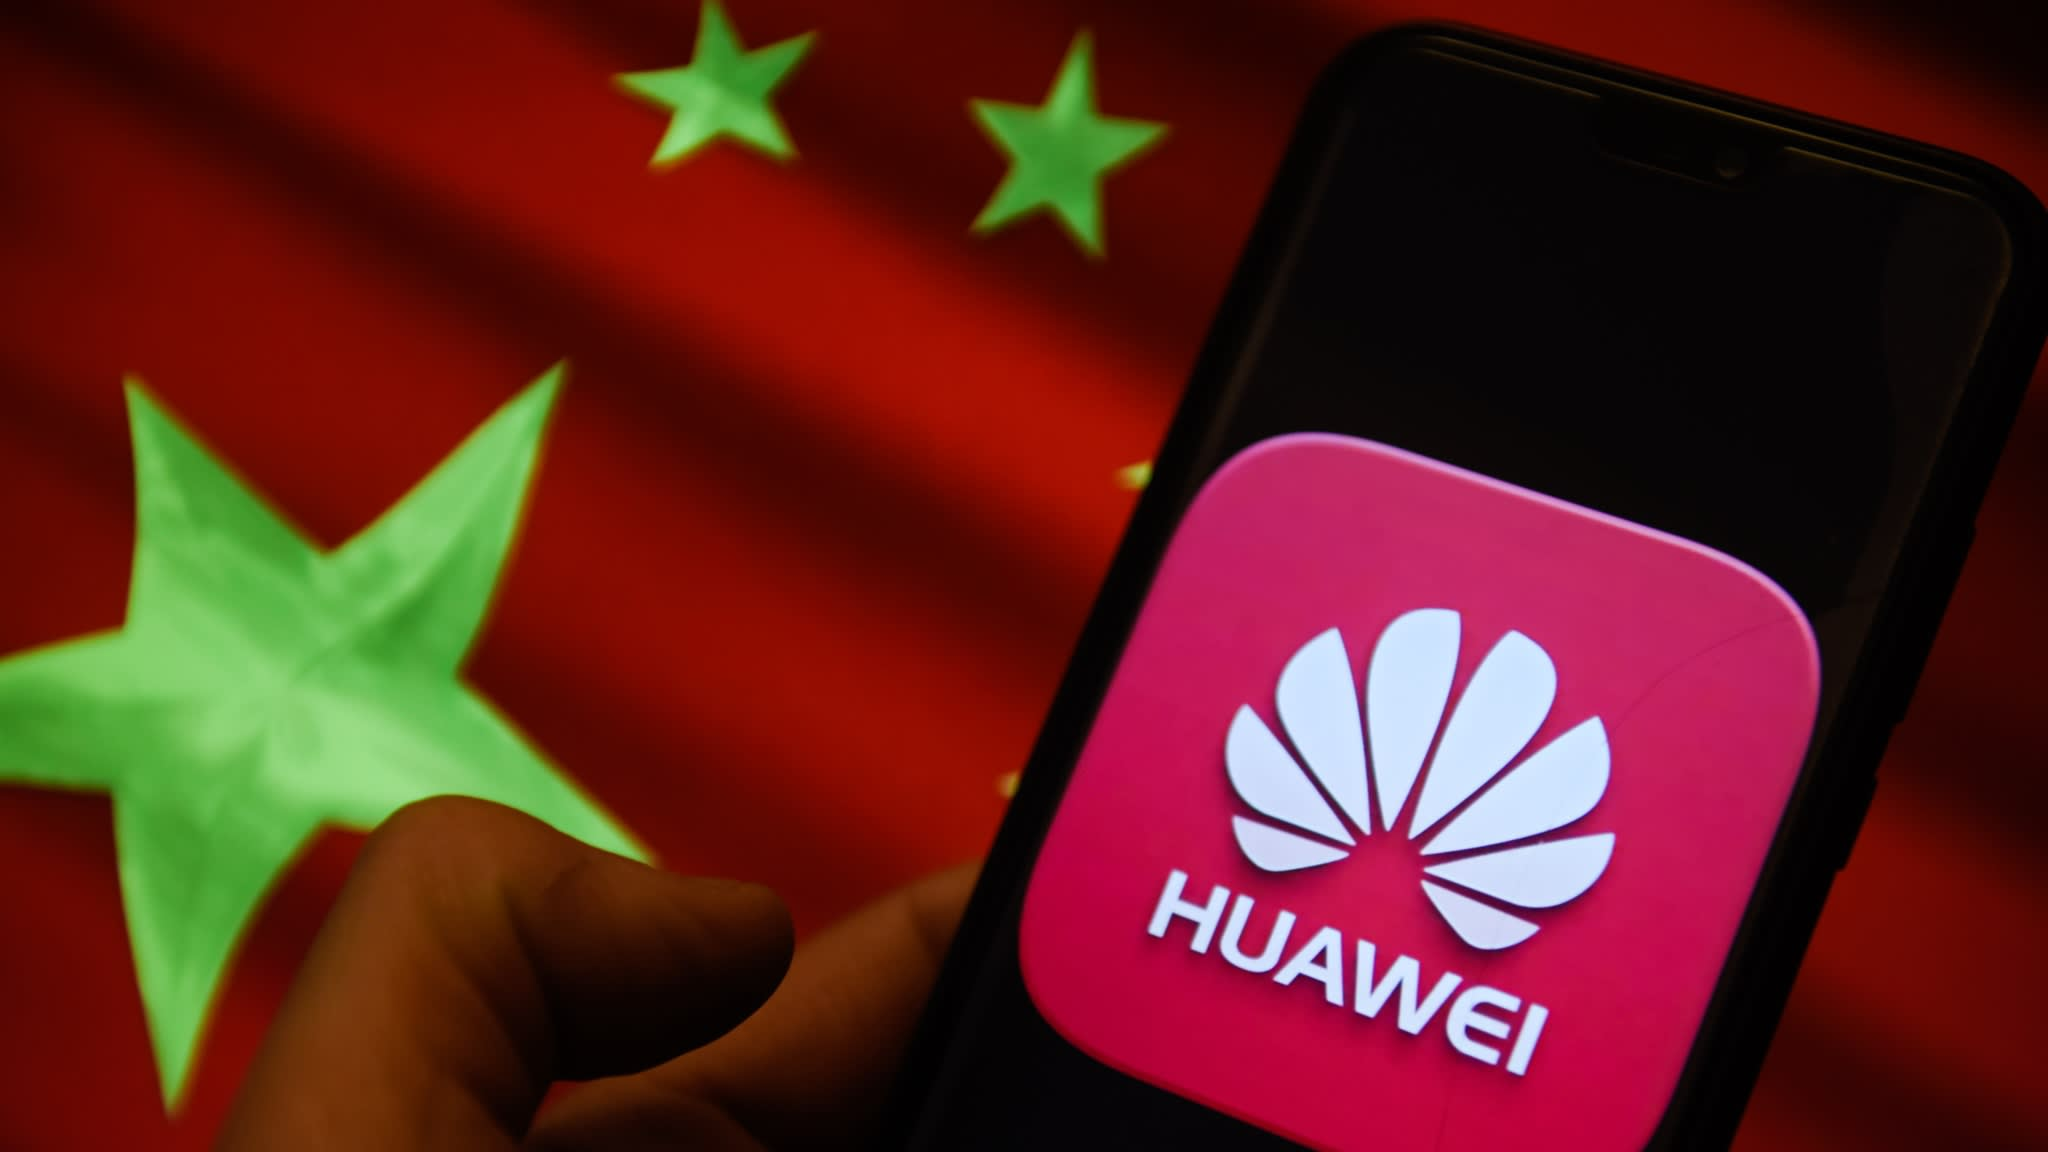 Huawei disputes new political hacking allegations - MSPoweruser